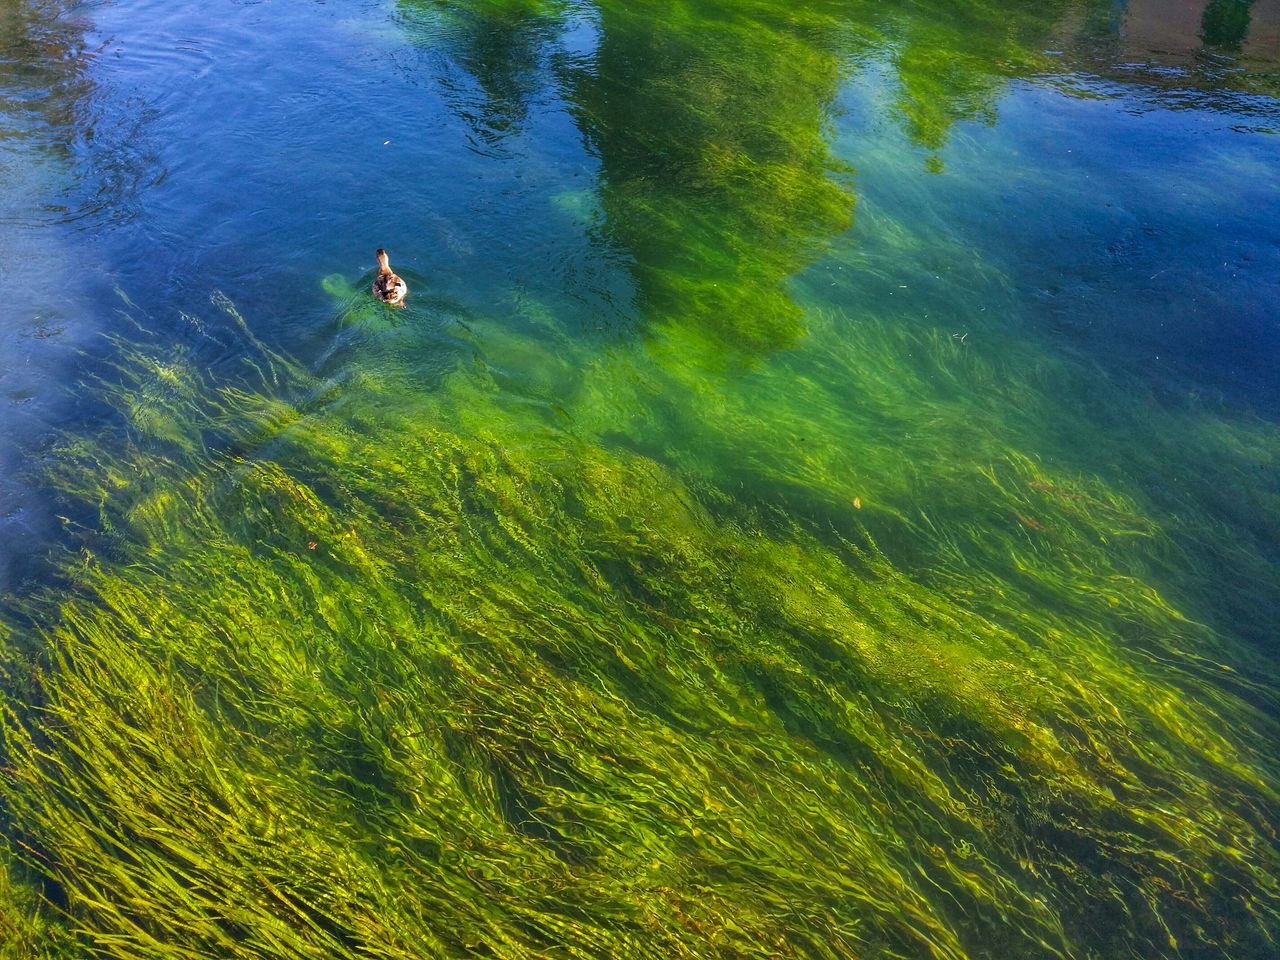 Paddling duck Travel Italy Treviso Mobile Photography Art Fineart Rivers Paddling Ducks Algae Reflections